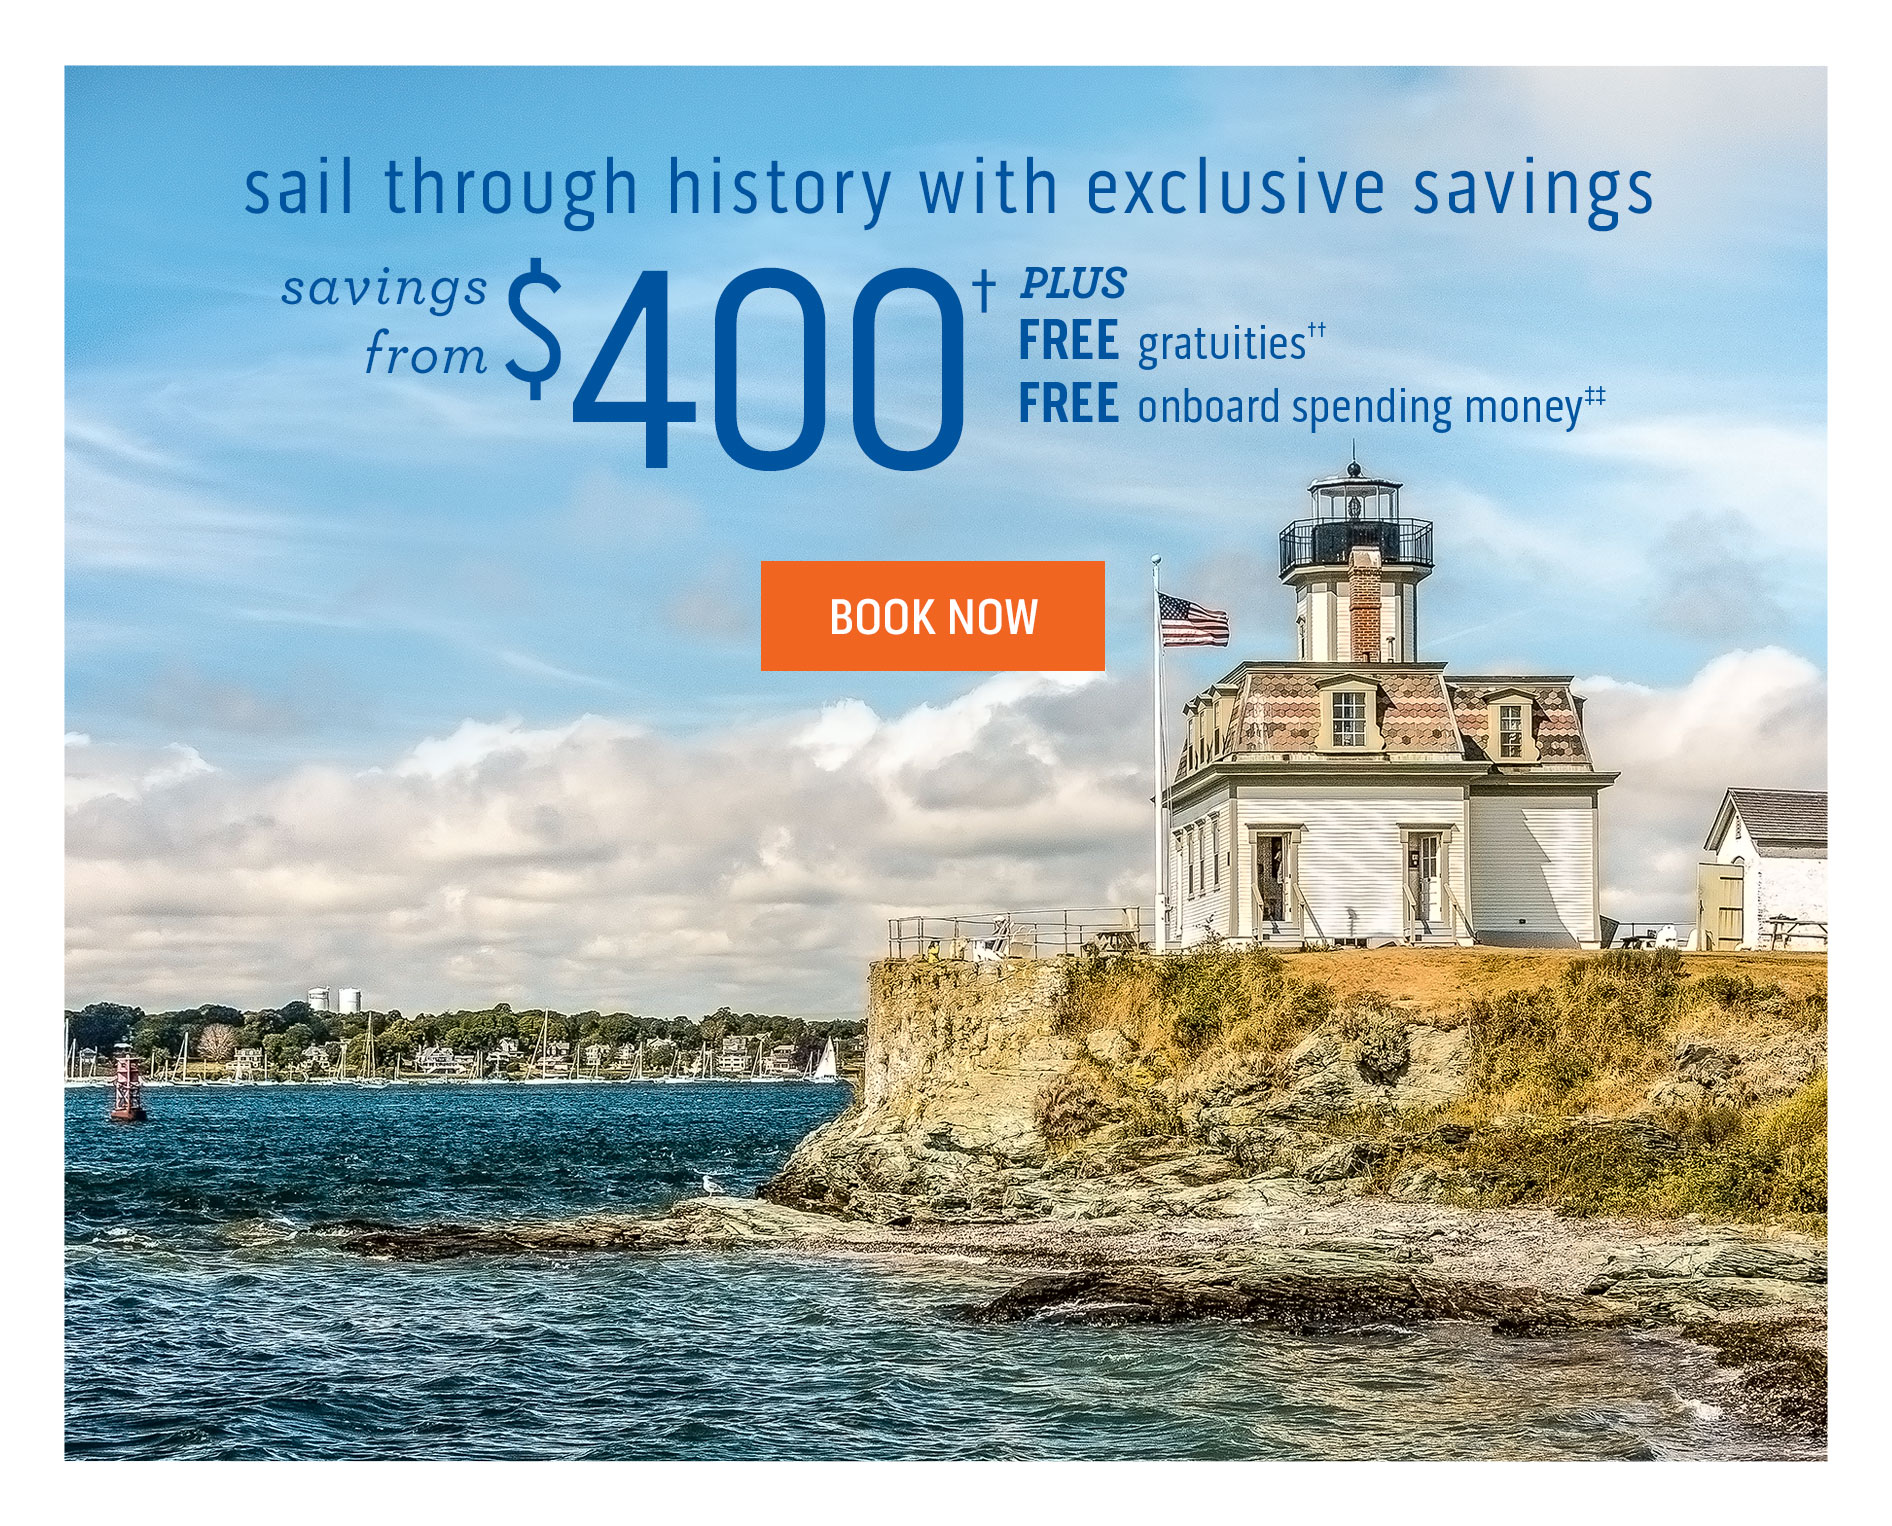 Image of a lighthouse and American flag on a low cliff by the ocean | sail through history with exclusive savings - savings from $400 plus FREE gratuities†† & FREE onboard spending money‡‡ - see disclaimer for details - Click here to book now